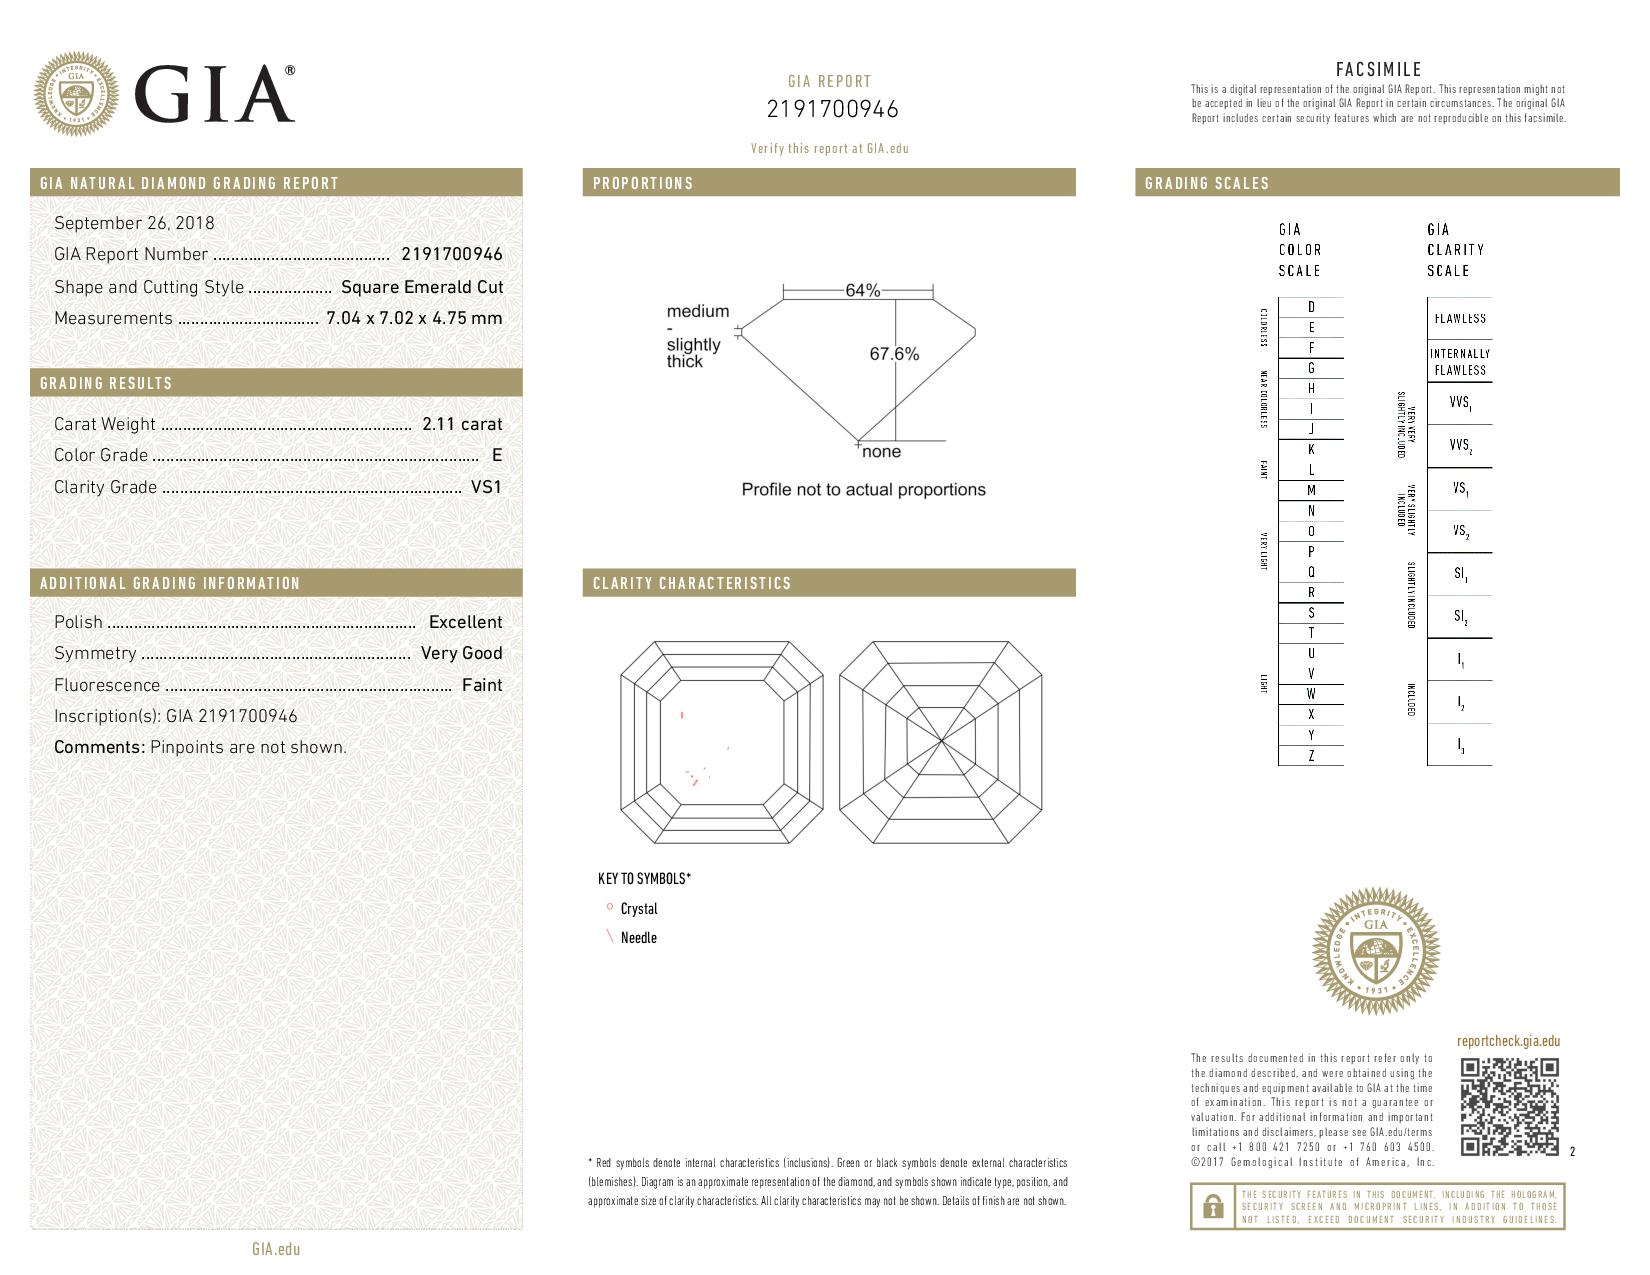 This is a 2.11 carat asscher shape, E color, VS1 clarity natural diamond accompanied by a GIA grading report.